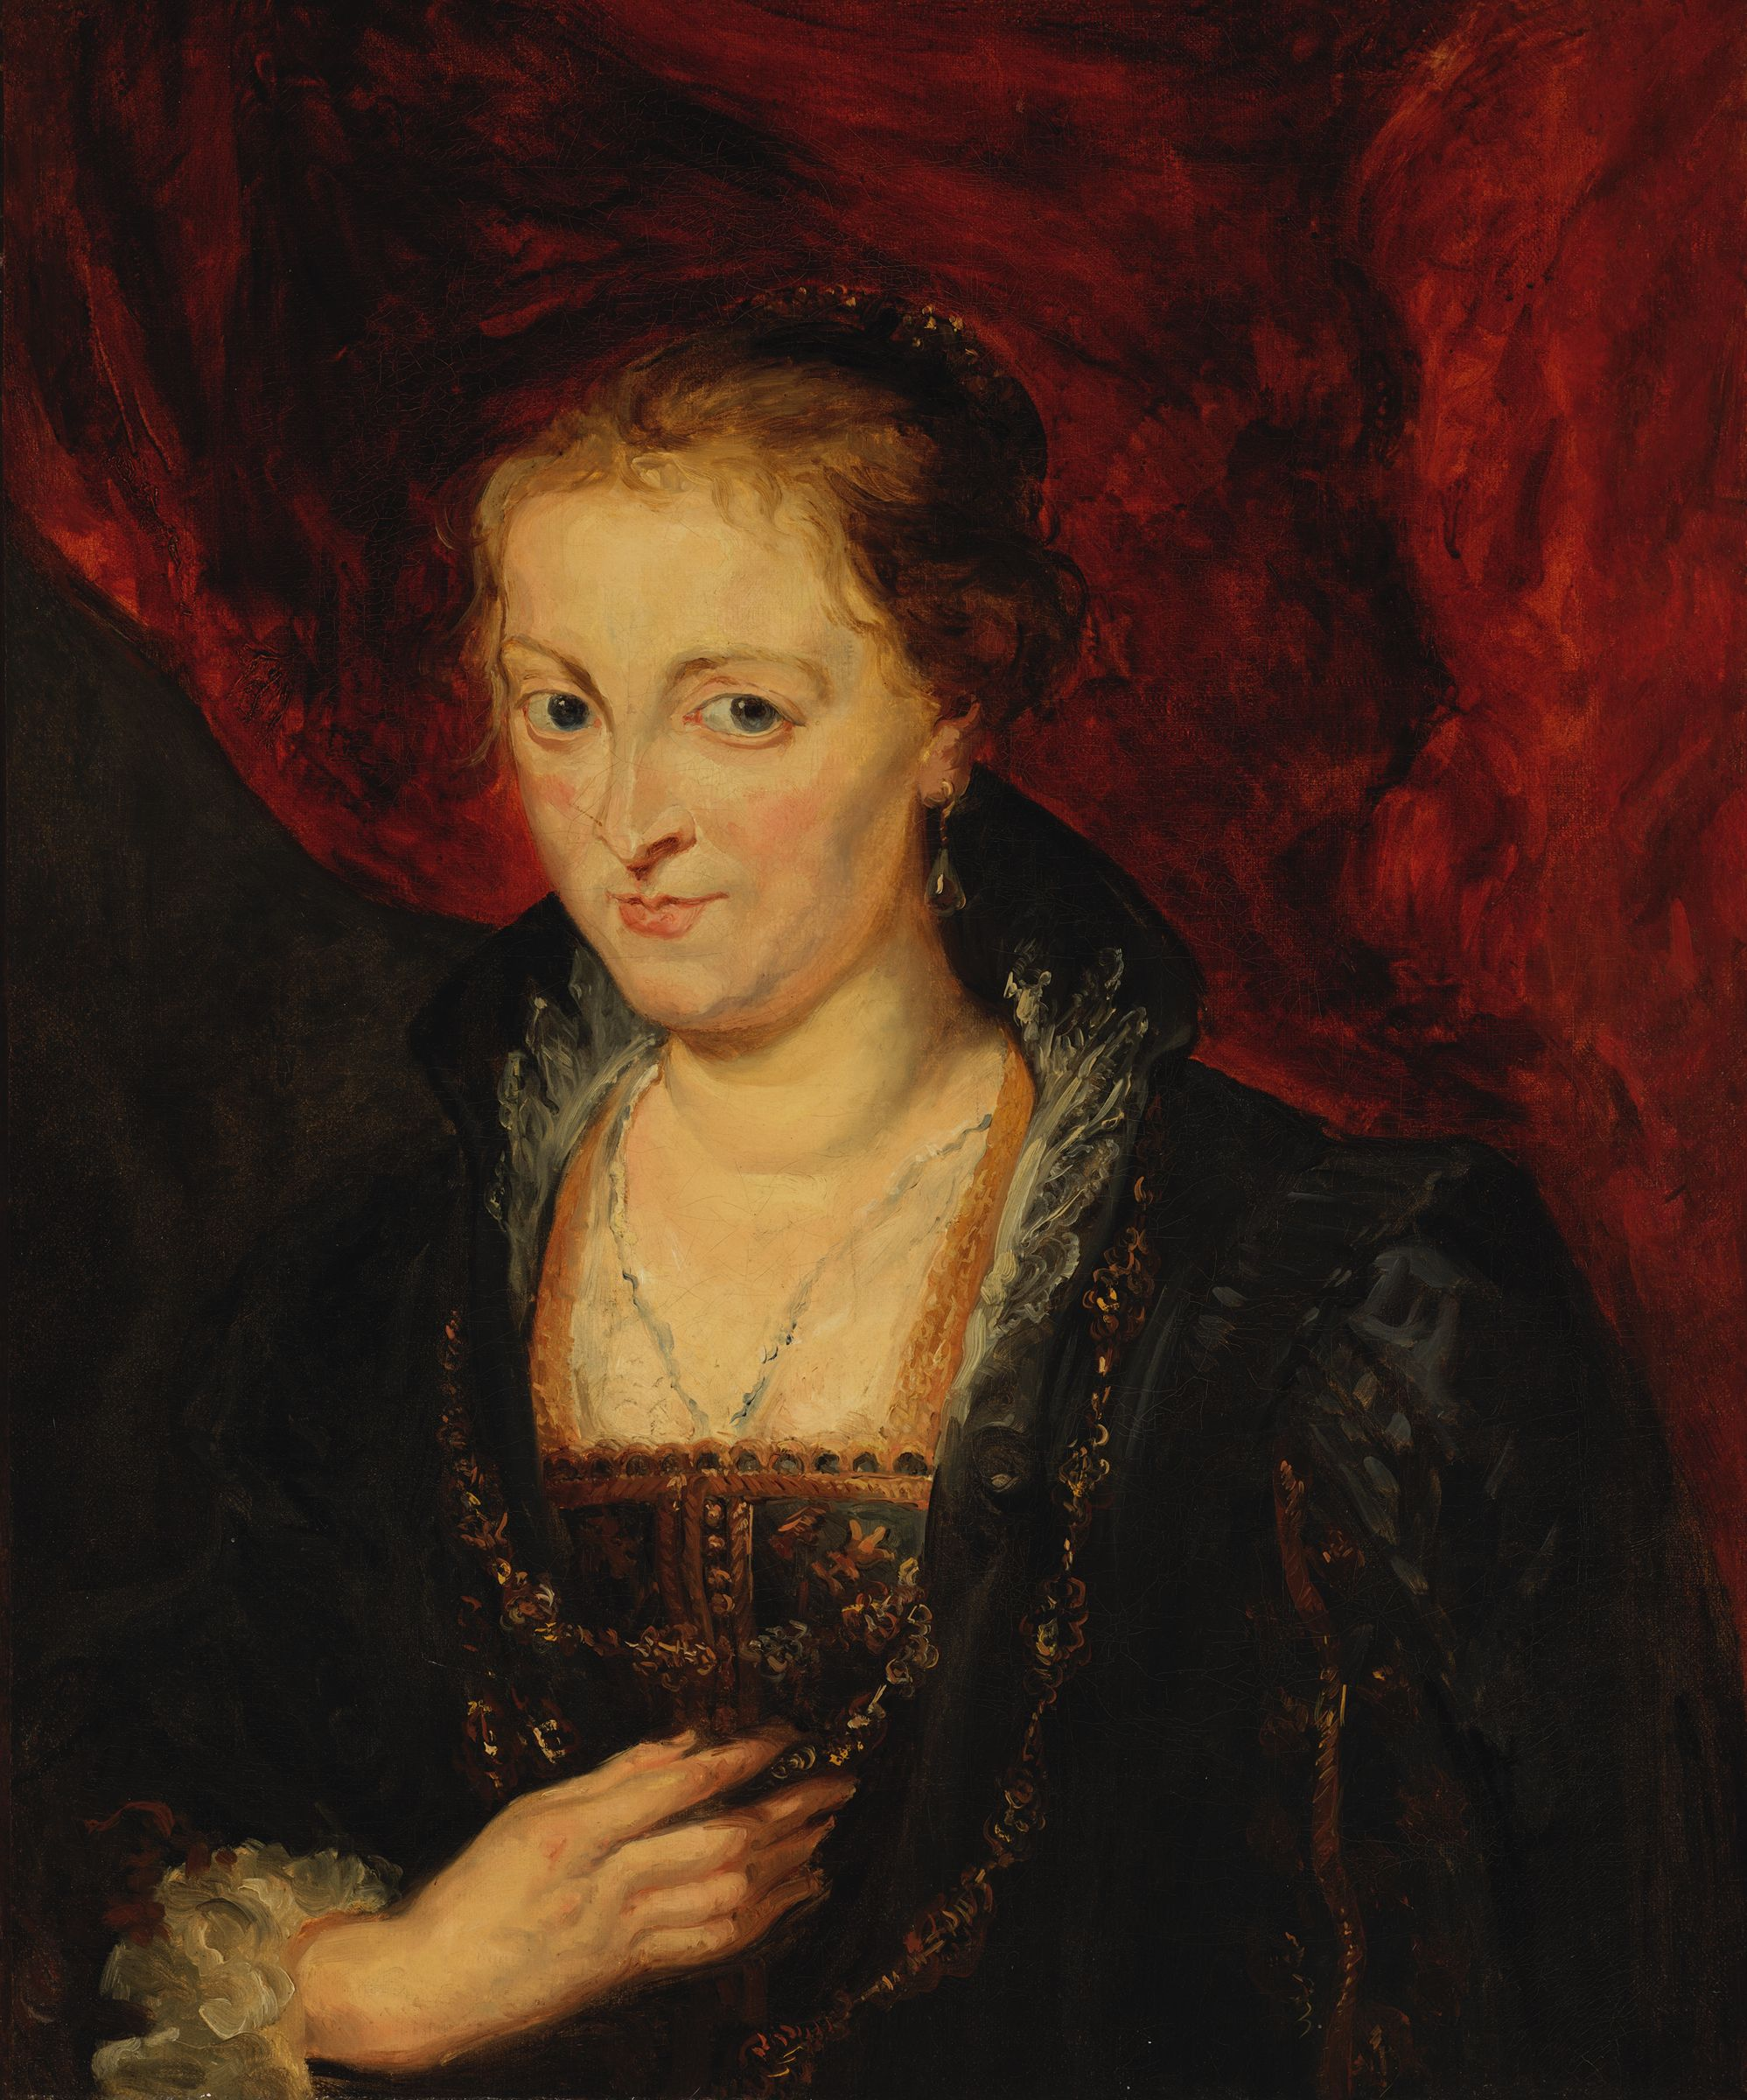 Suzanne Fourment, After Rubens